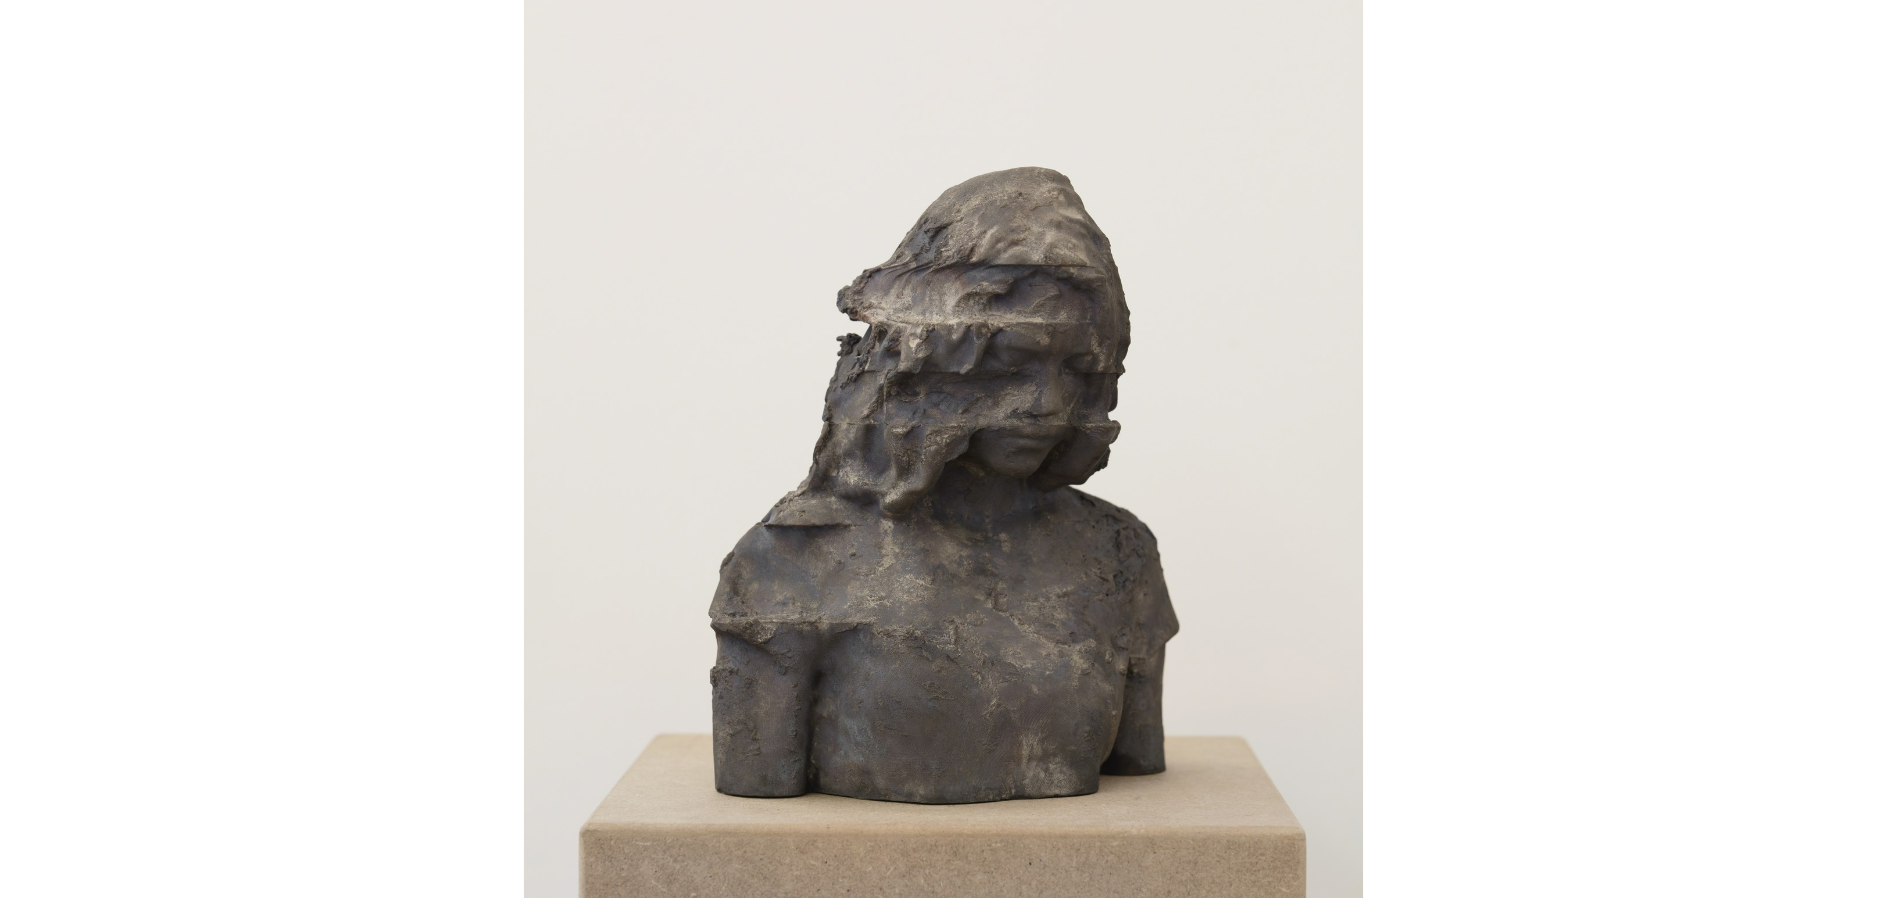 Andy Denzler, 'Bust I,' 2015, Opera Gallery Andy Denzler Bust I, 2015 Bronze 11 × 9 2/5 × 6 3/10 in 28 × 24 × 16 cm Edition of 6 + 2AP